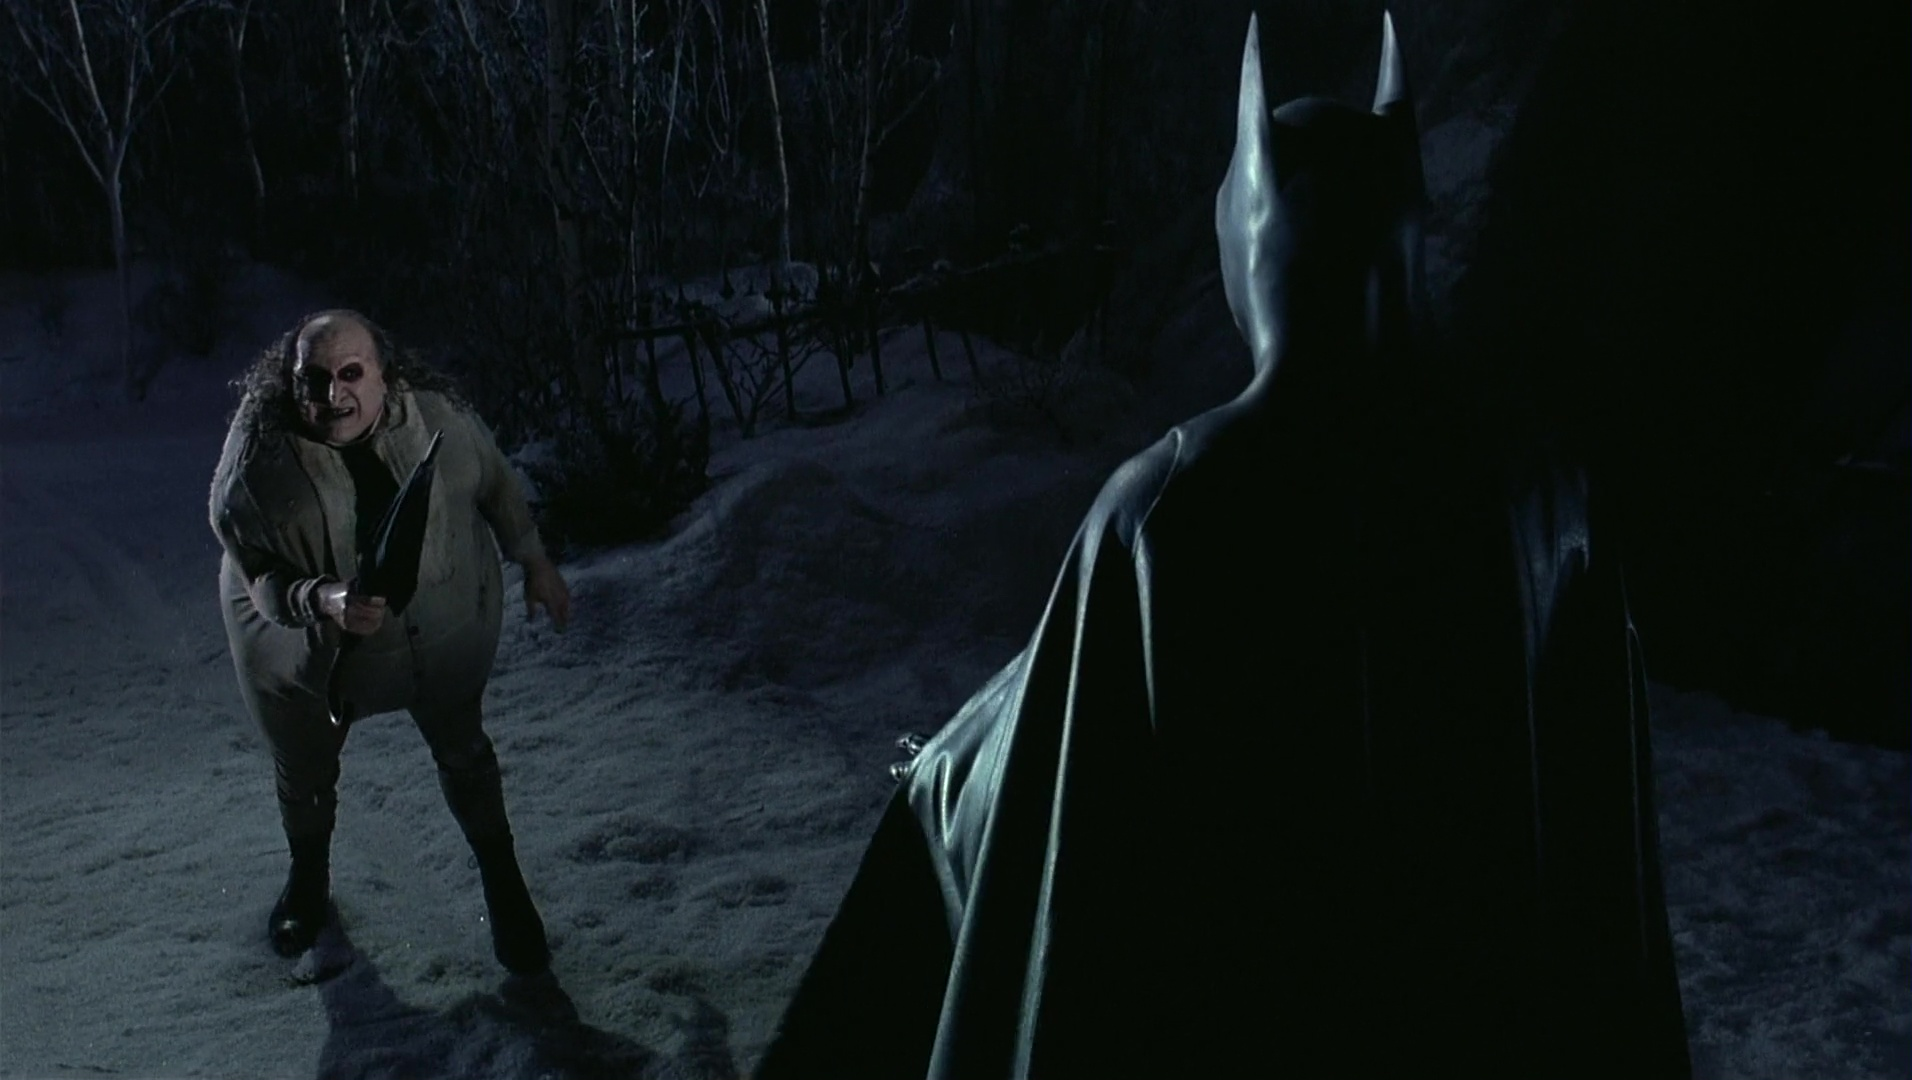 File:Batman vs Penguin 2.jpg